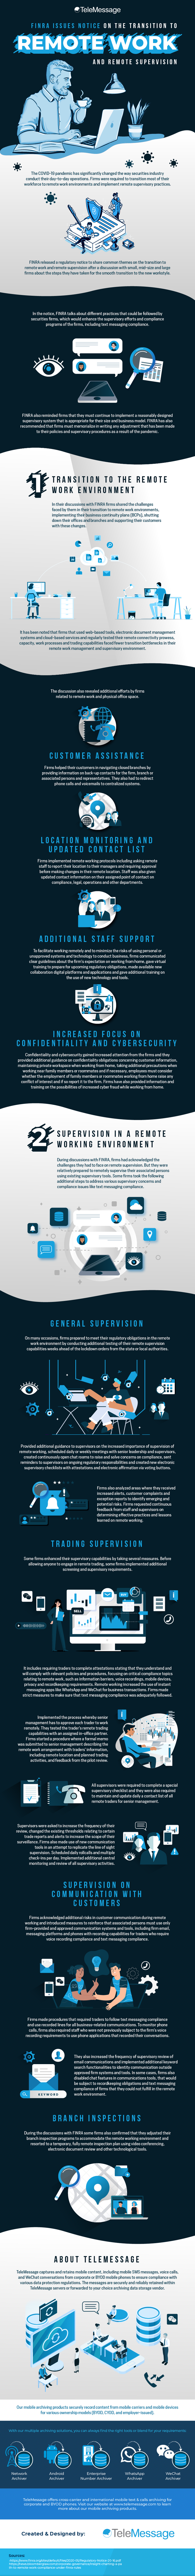 finra infographic